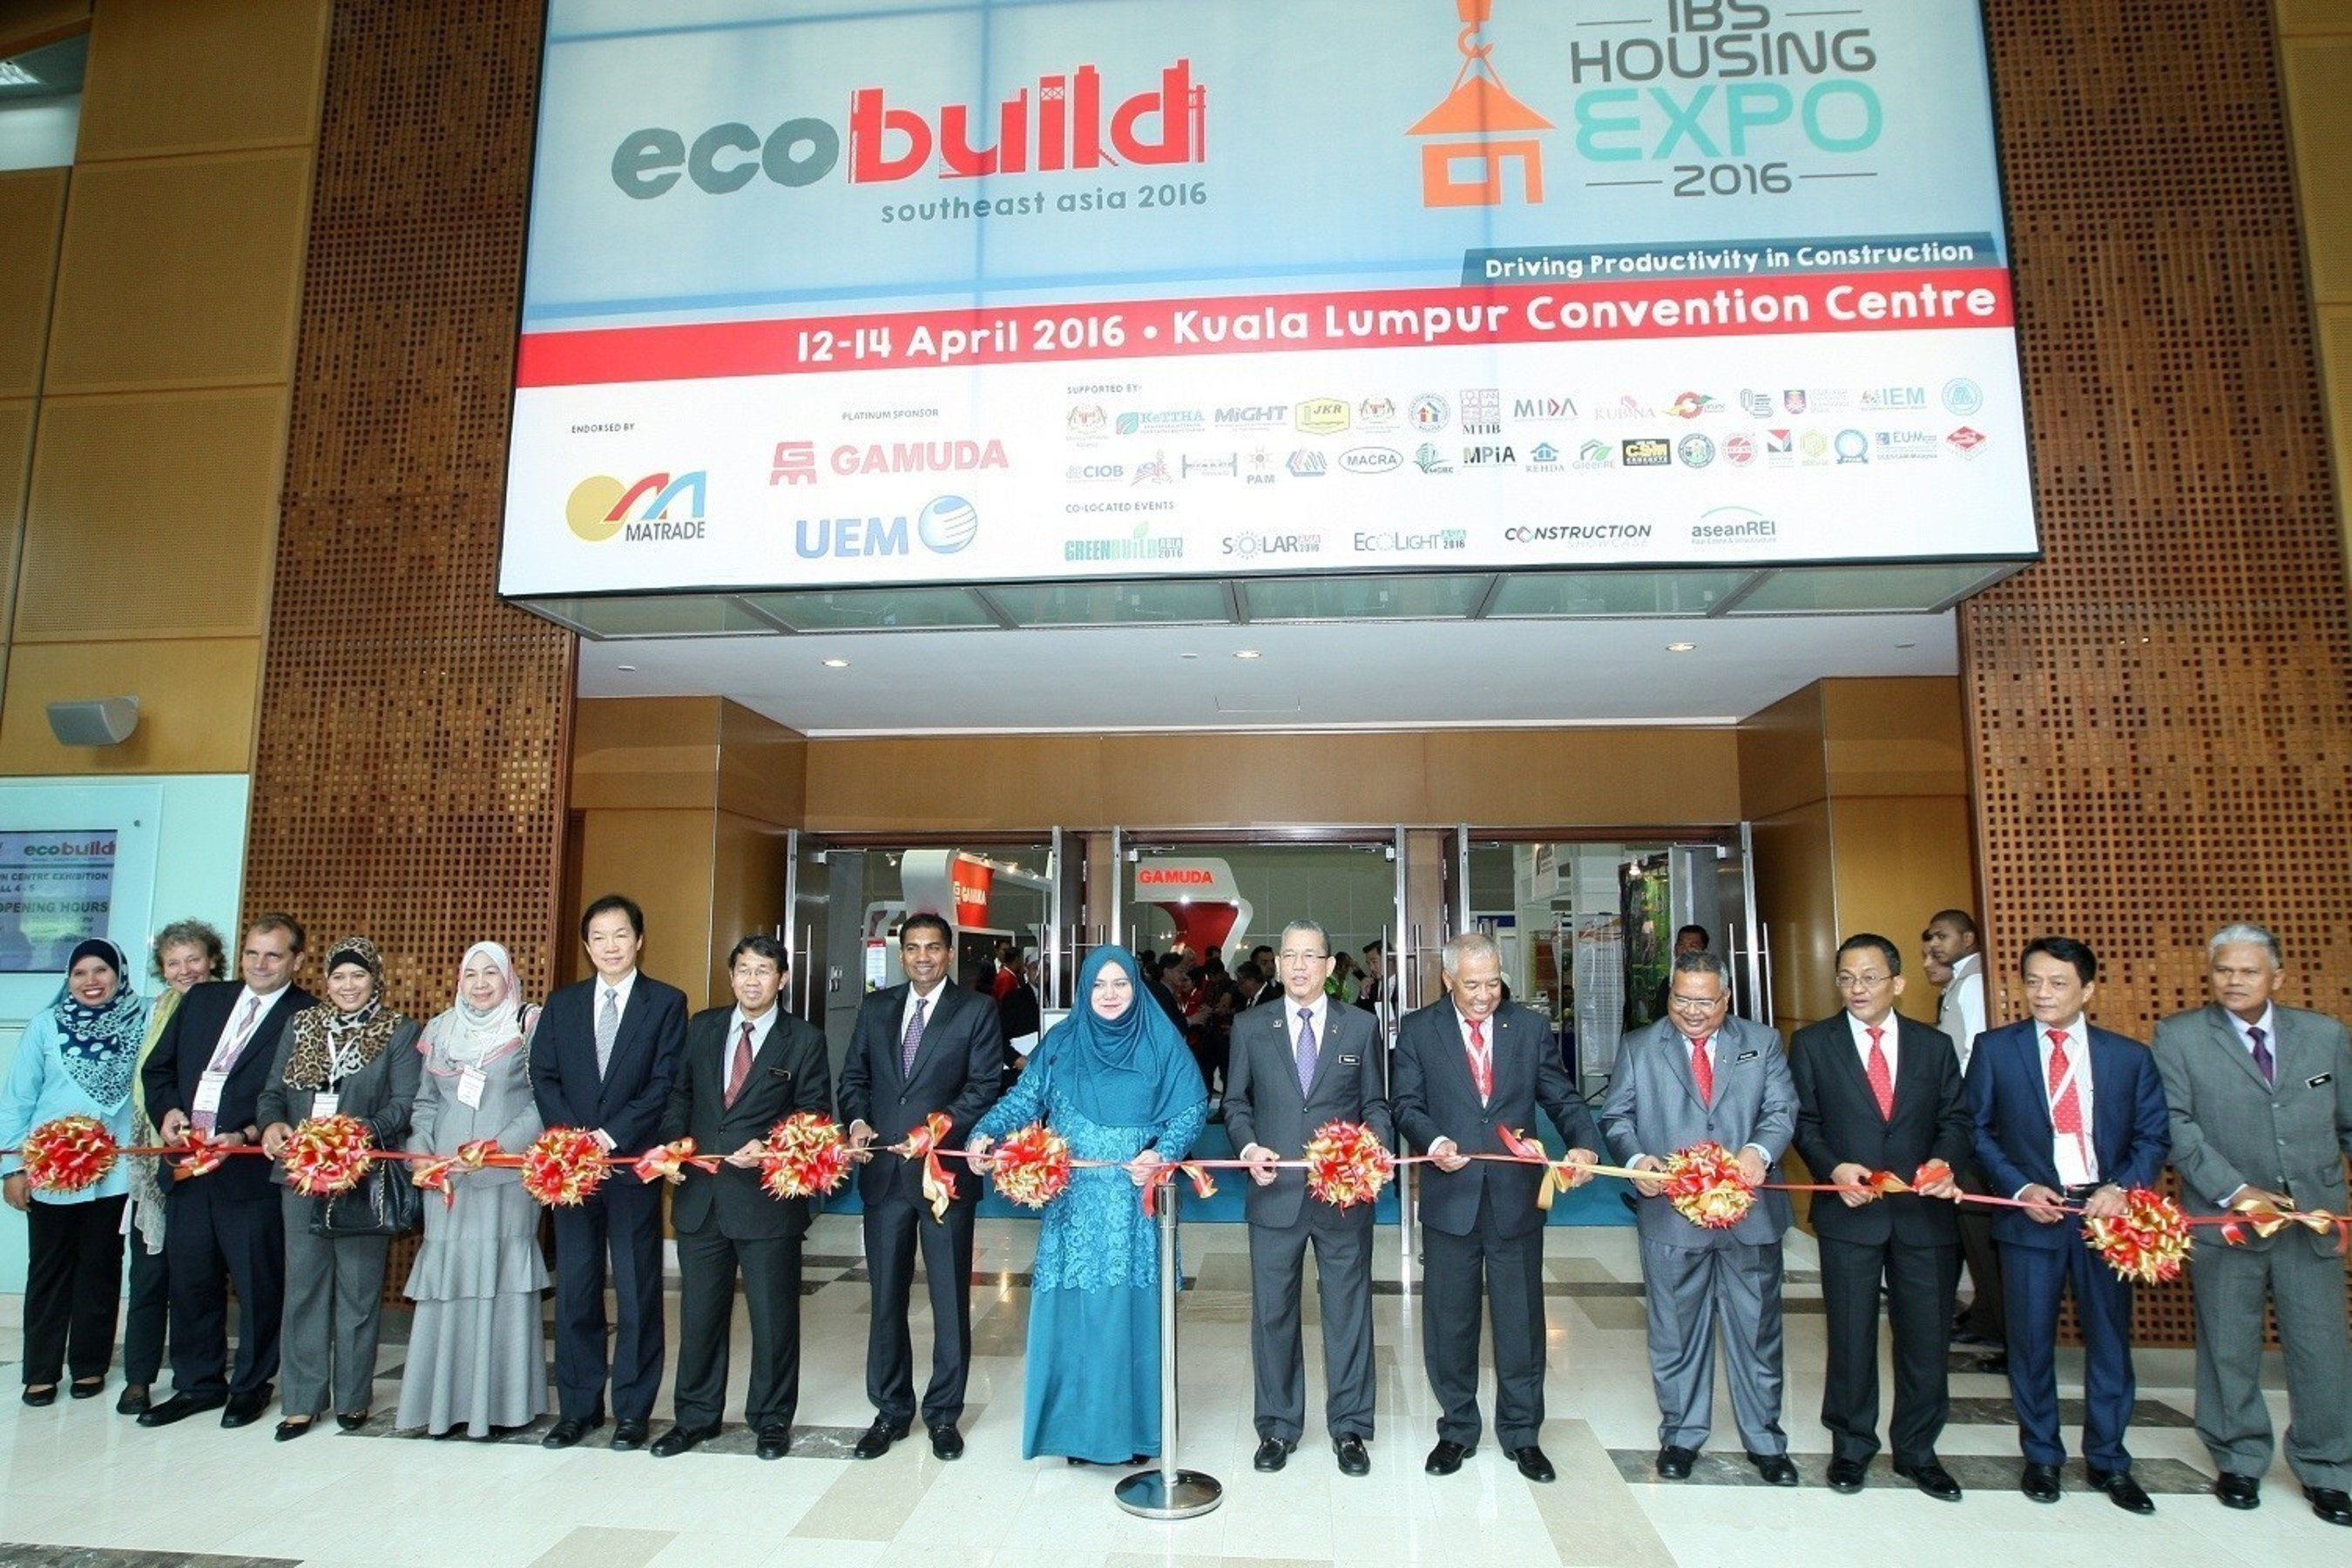 Ribbon cutting by Dato' Sri Haji Fadillah, Minister of Works Malaysia accompany by Datuk Rosnah, Deputy Minister of Work Malaysia, Dato' Sri Zohari, Sec. Gen. Ministry of Work, Tan Sri Dr. Ir. Ahmad Tajuddin Ali, Chairman of CIDB Malaysia, Dato' Ir. Ahmad 'Asri, CIDB Chief Executive, Mr. M Gandhi, Managing Director (ASEAN Business) of UBM Asia and other VIP entourage symbolises the official opening of the Ecobuild Southeast Asia 2016